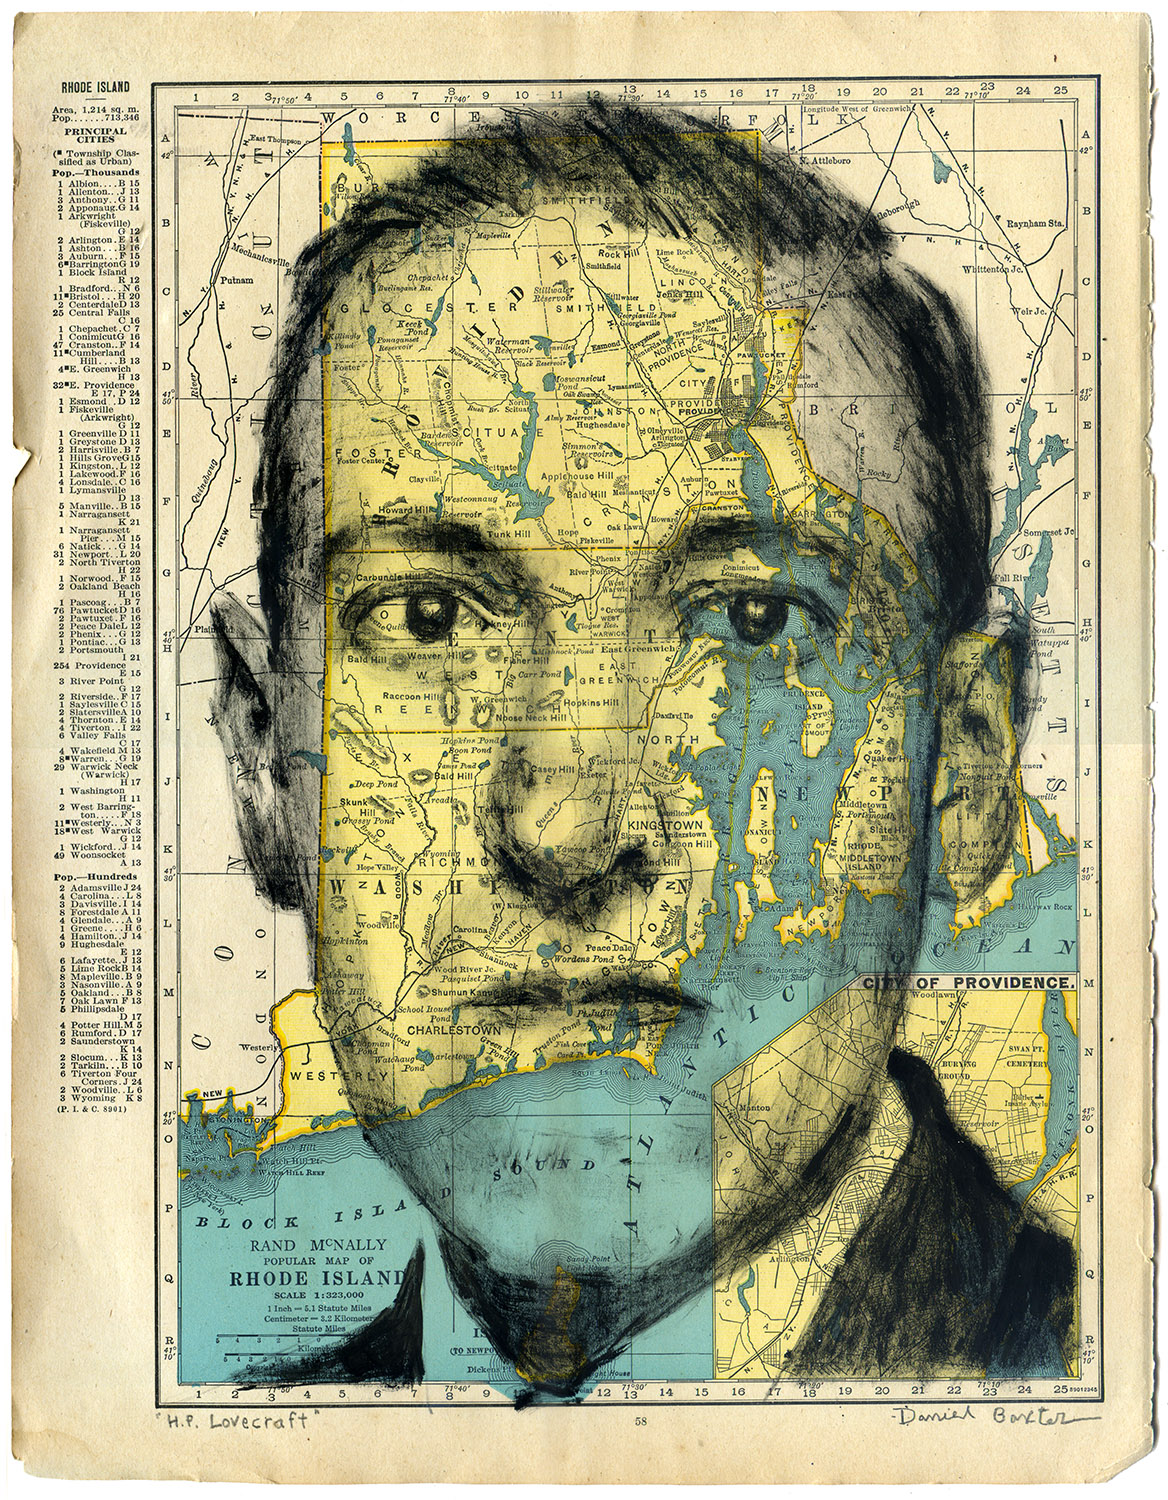 Daniel Baxter HP Lovecraft portrait.jpg